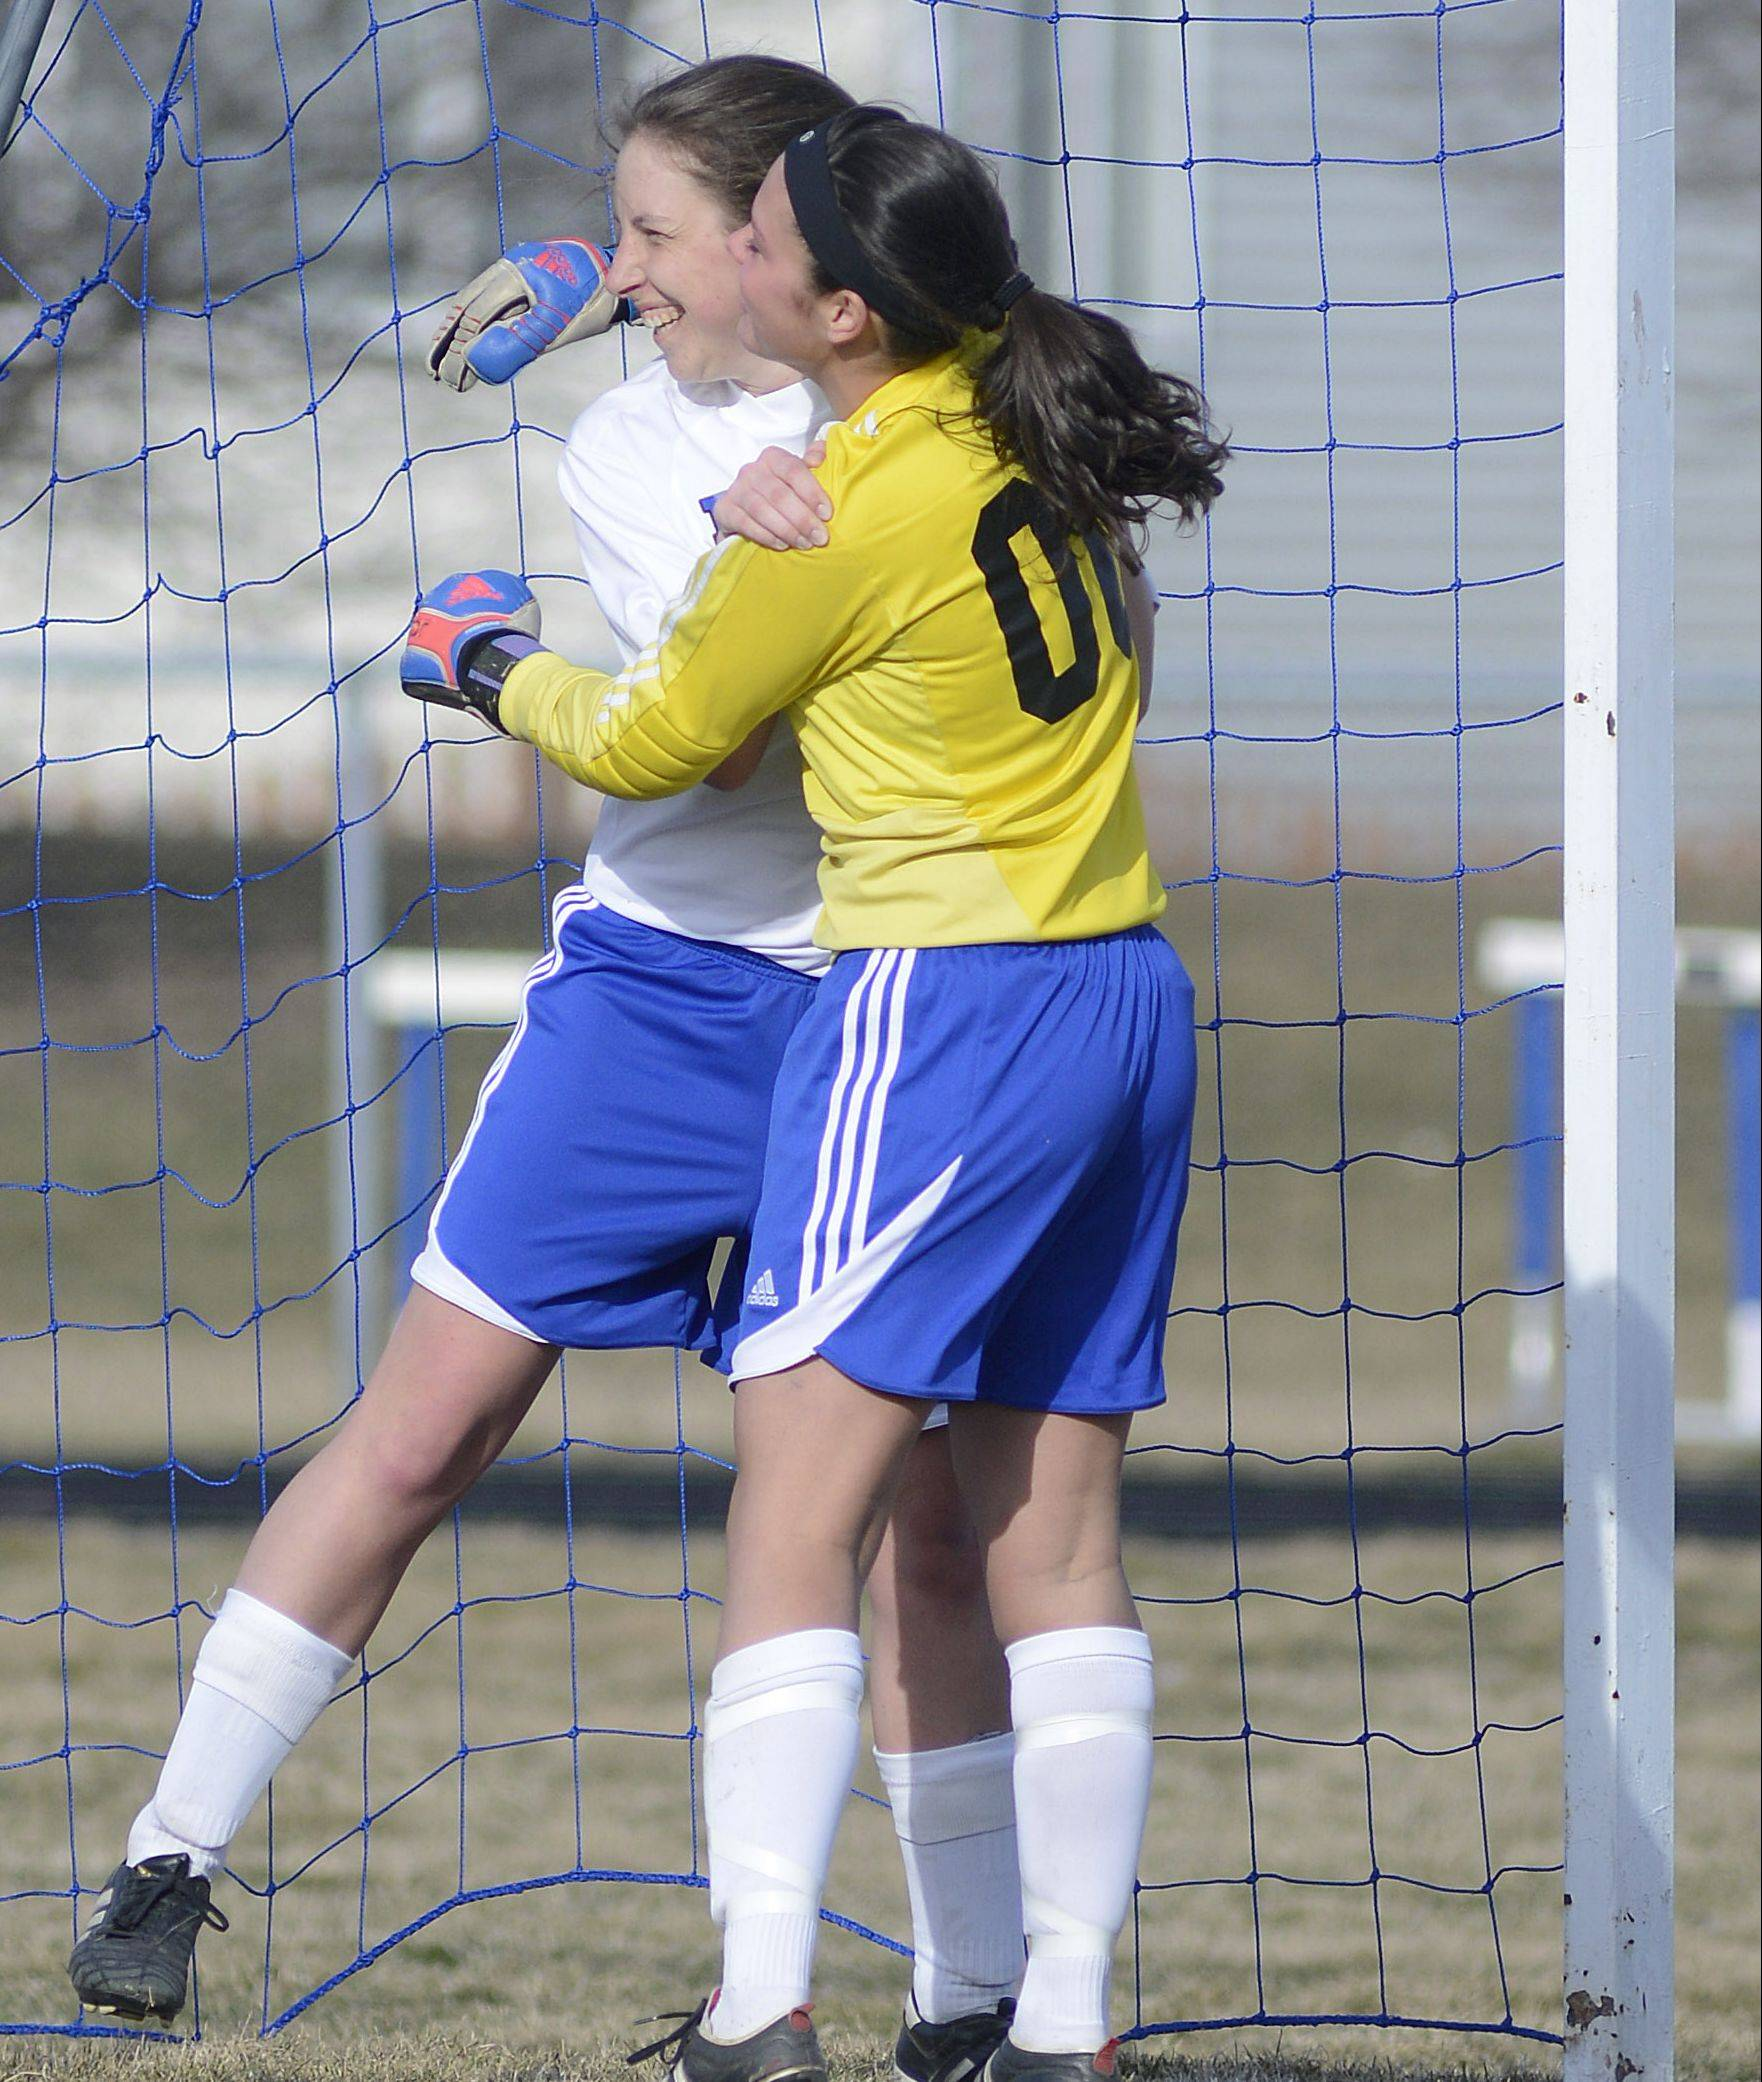 Rosary goalie Lauren Frasca embraces teammate Stephanie Ebert after Ebert deflected a ball and prevented a goal by Wheaton Academy in the first half on Wednesday, April 3.